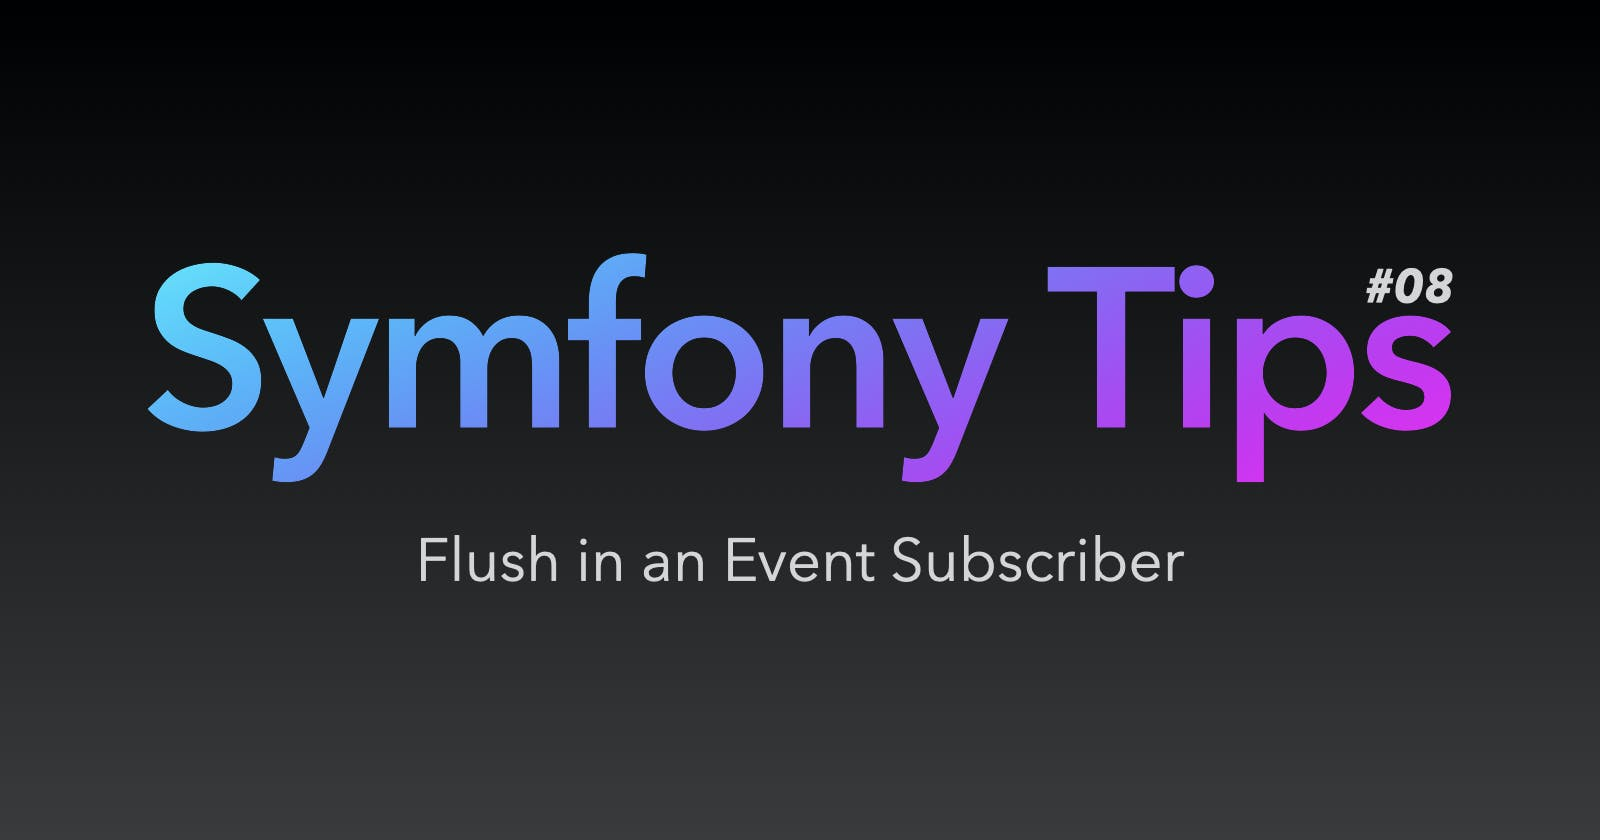 Symfony Tips #08 - Flush in an Event Subscriber